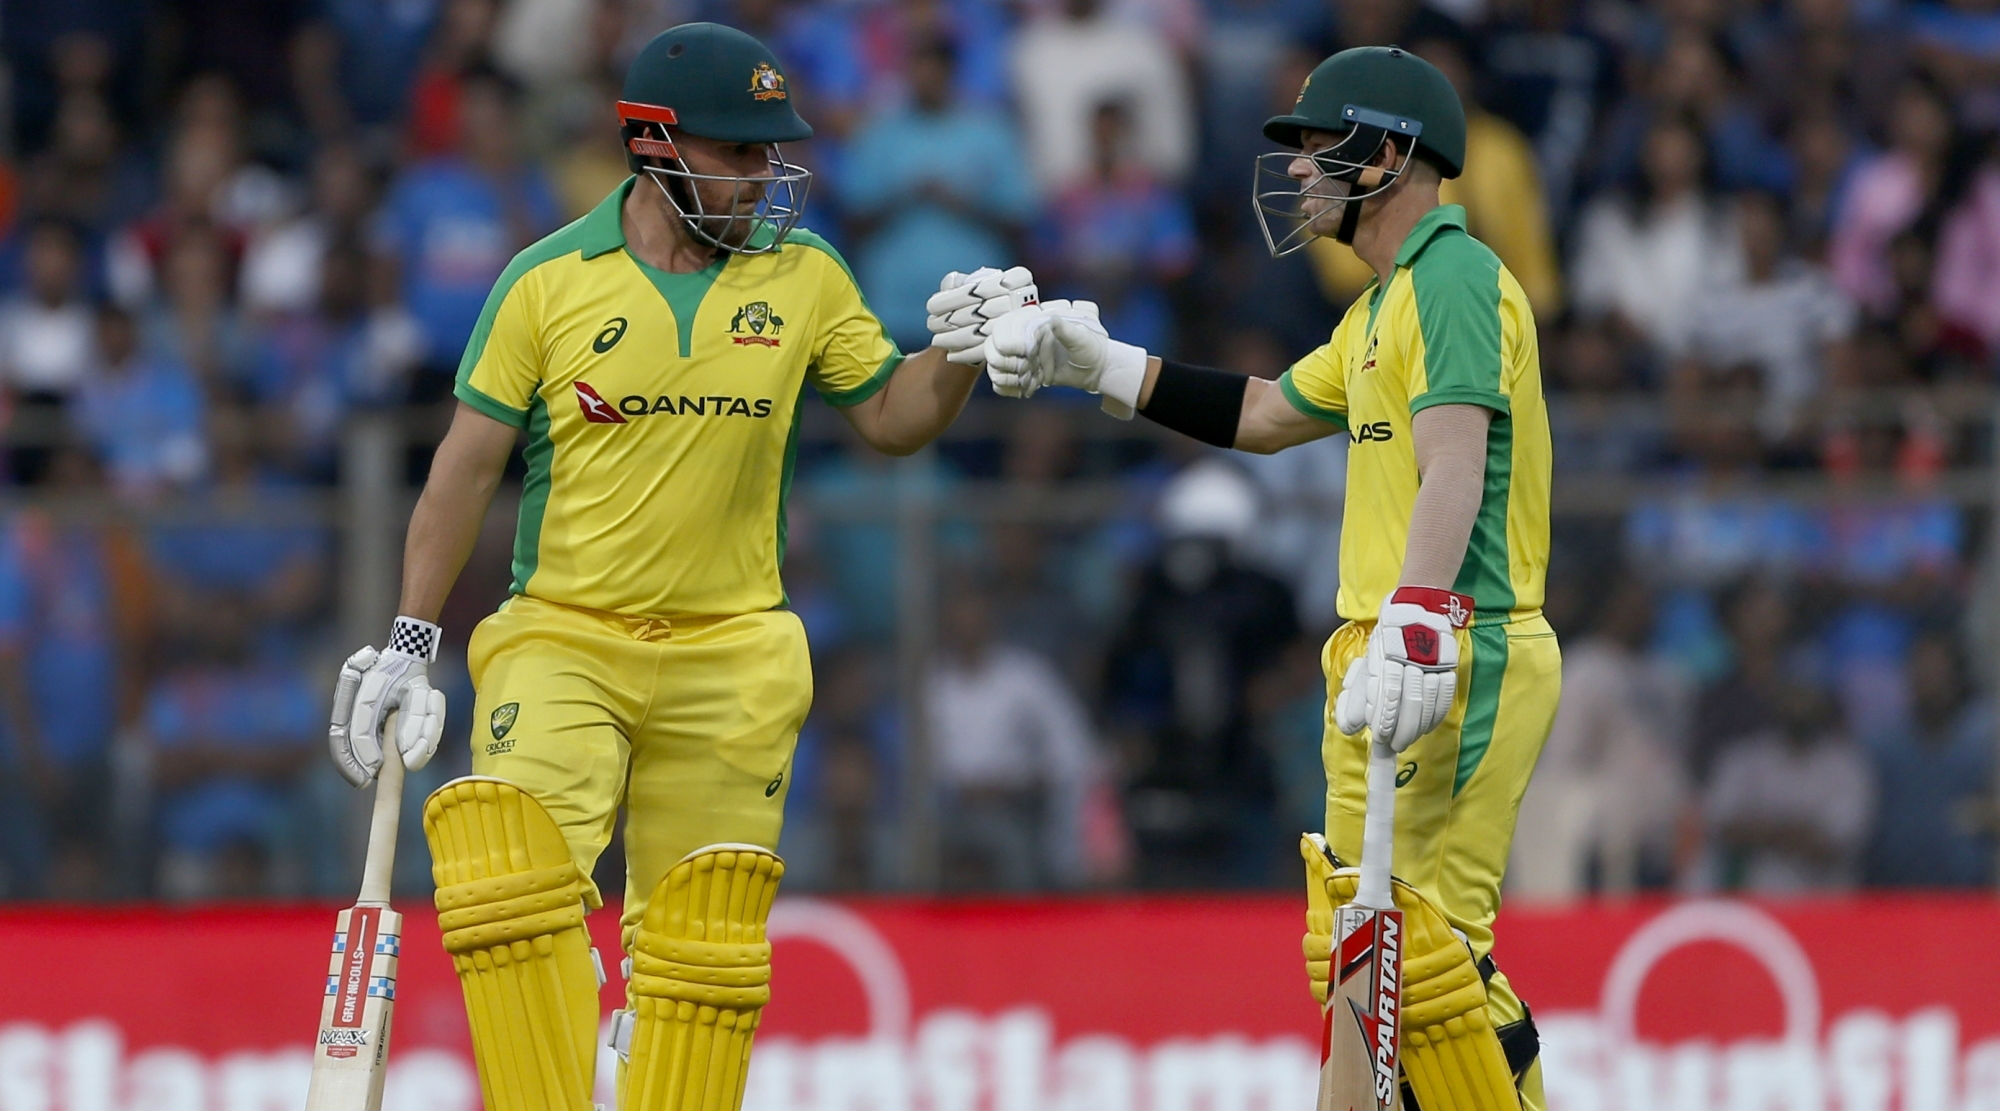 India vs Australia, 1st ODI 2020: Unstoppable Aussies Thrash Hosts by 10 Wickets at Wankhede Stadium in Mumbai